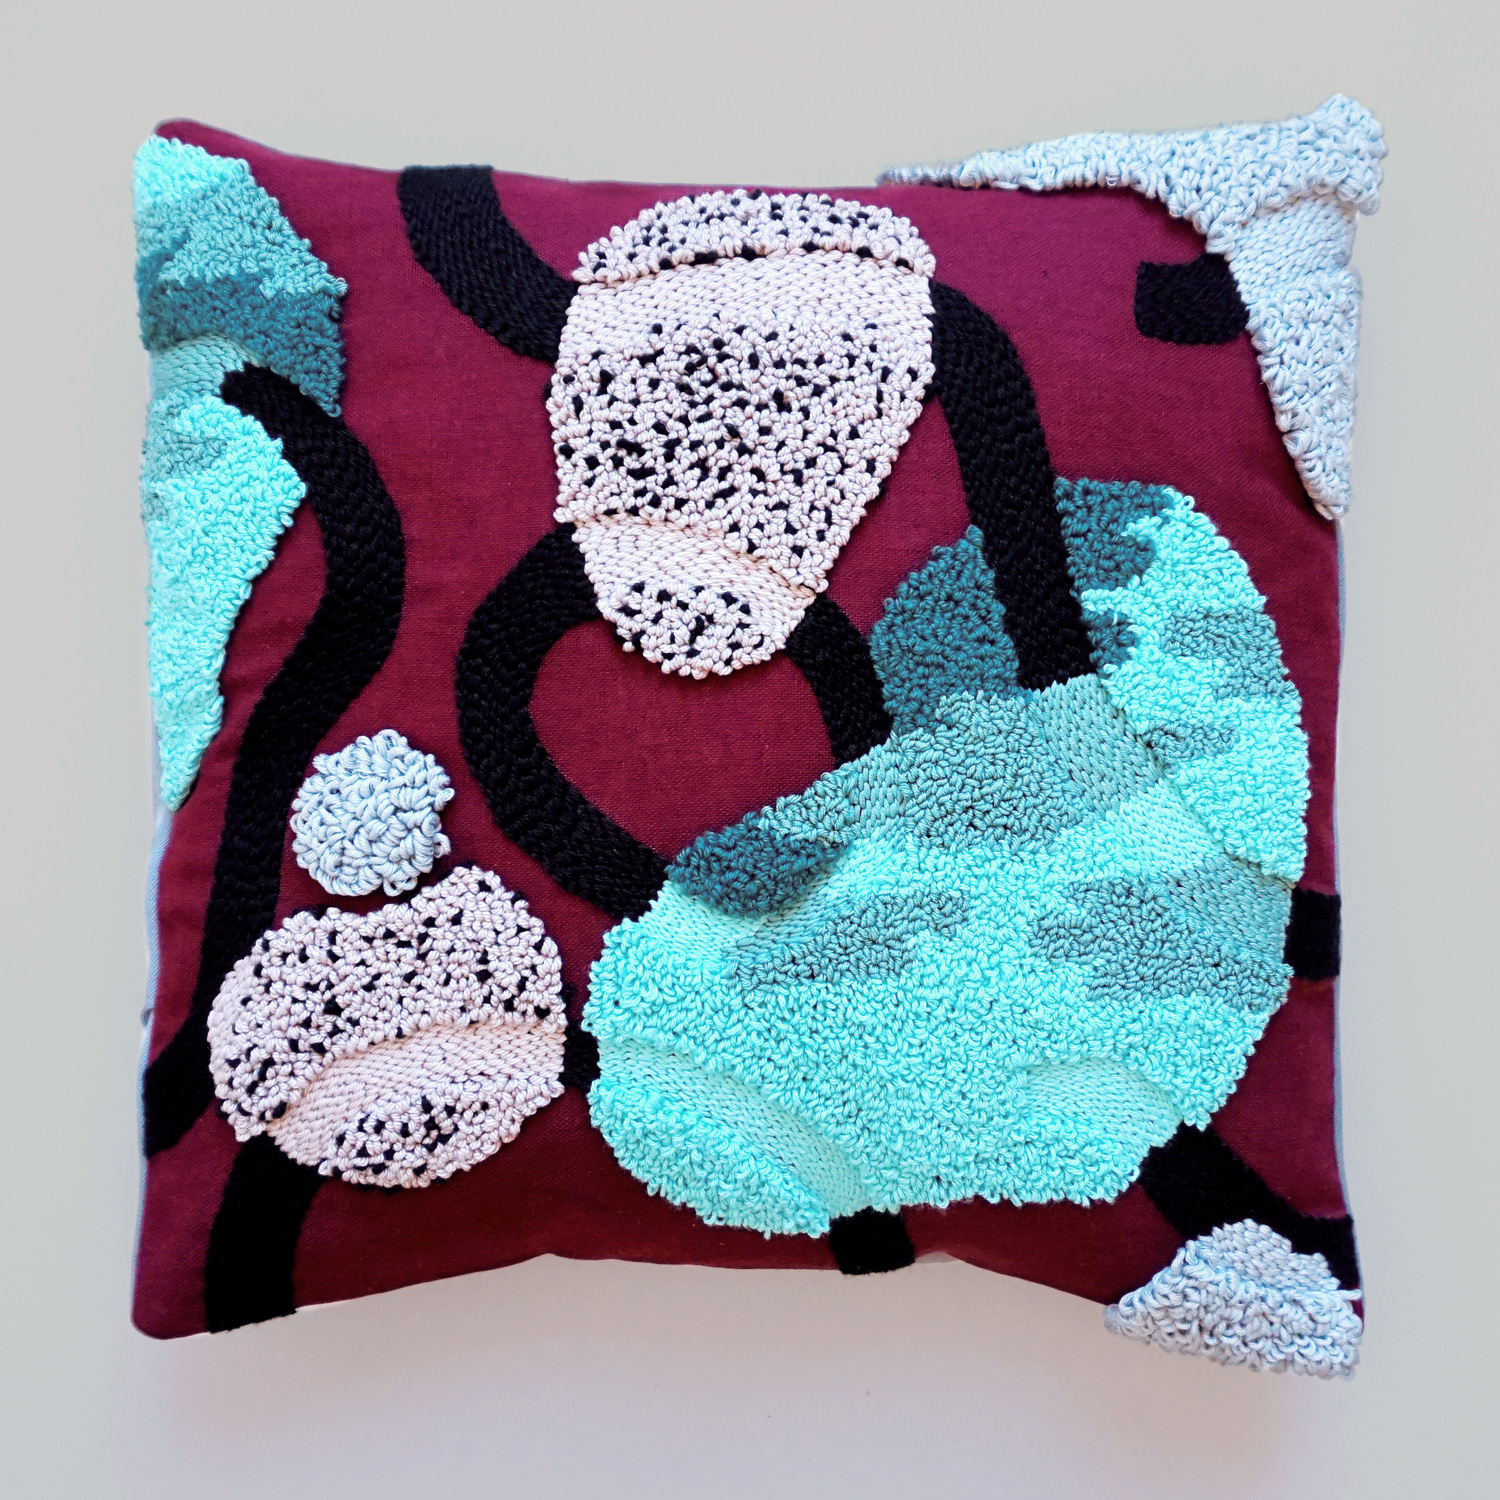 A flowy and fluffy punch needle pillow case, featuring a mossy river stone design.